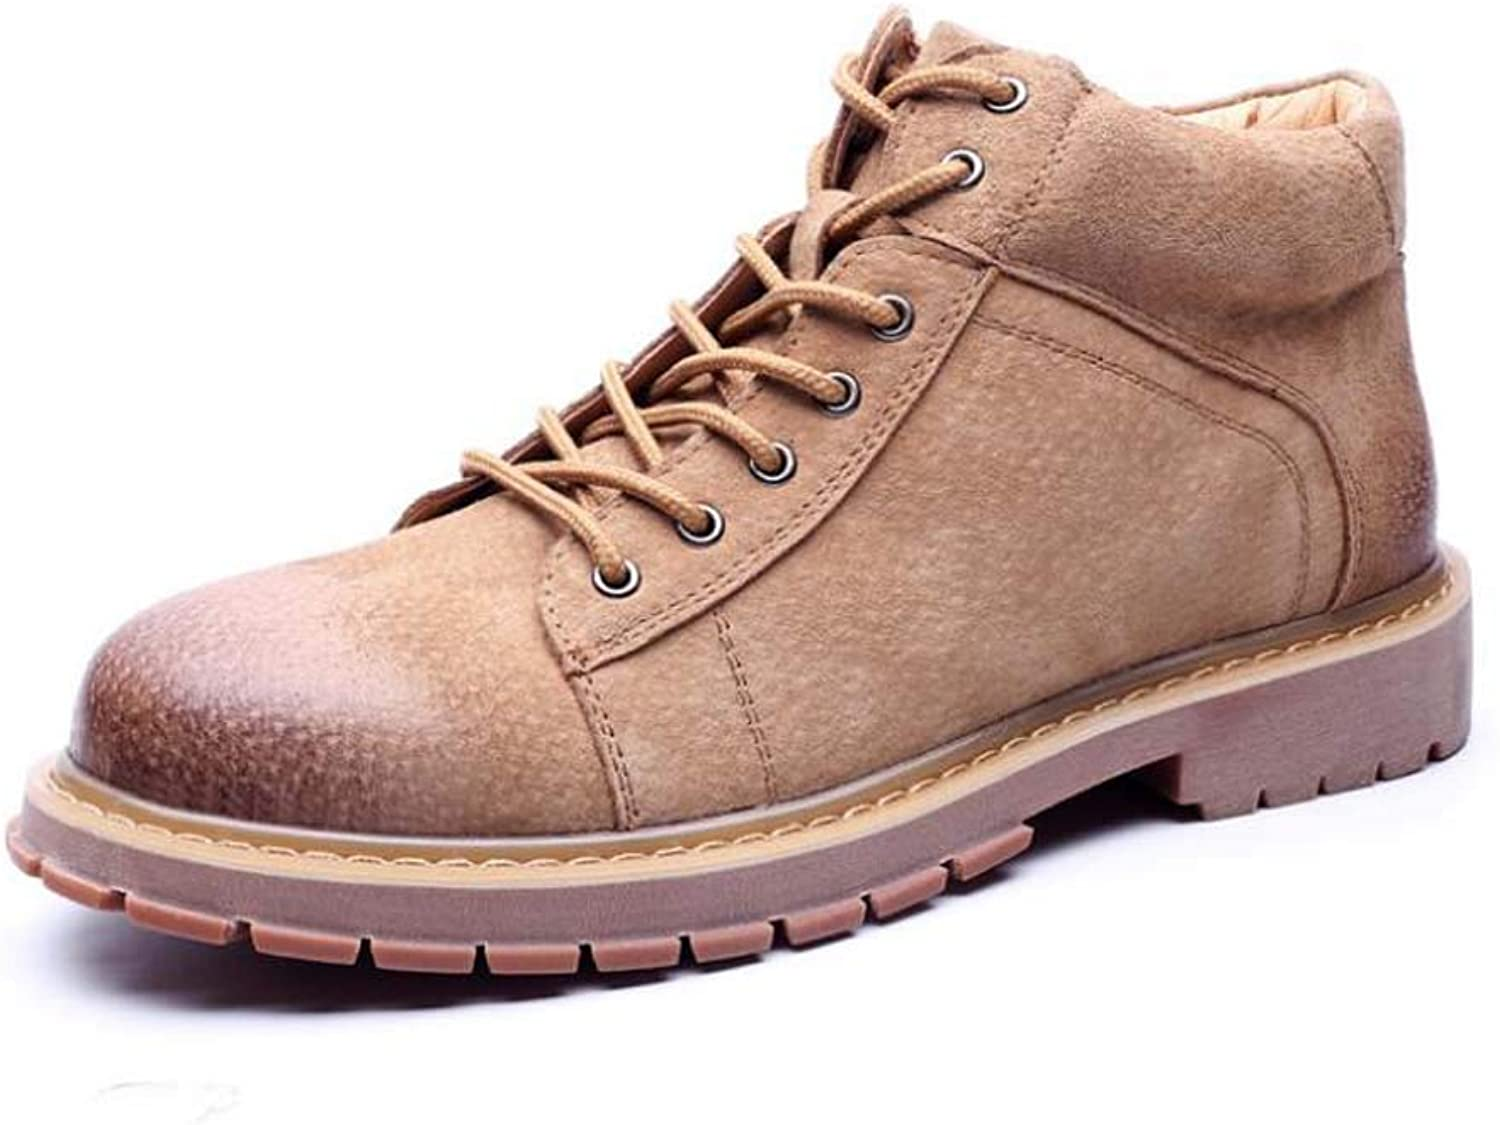 Martin Boots Cross Straps High Top Short Boots Men Round Toe British Style Tooling Desert Boots Eu Size 38-44